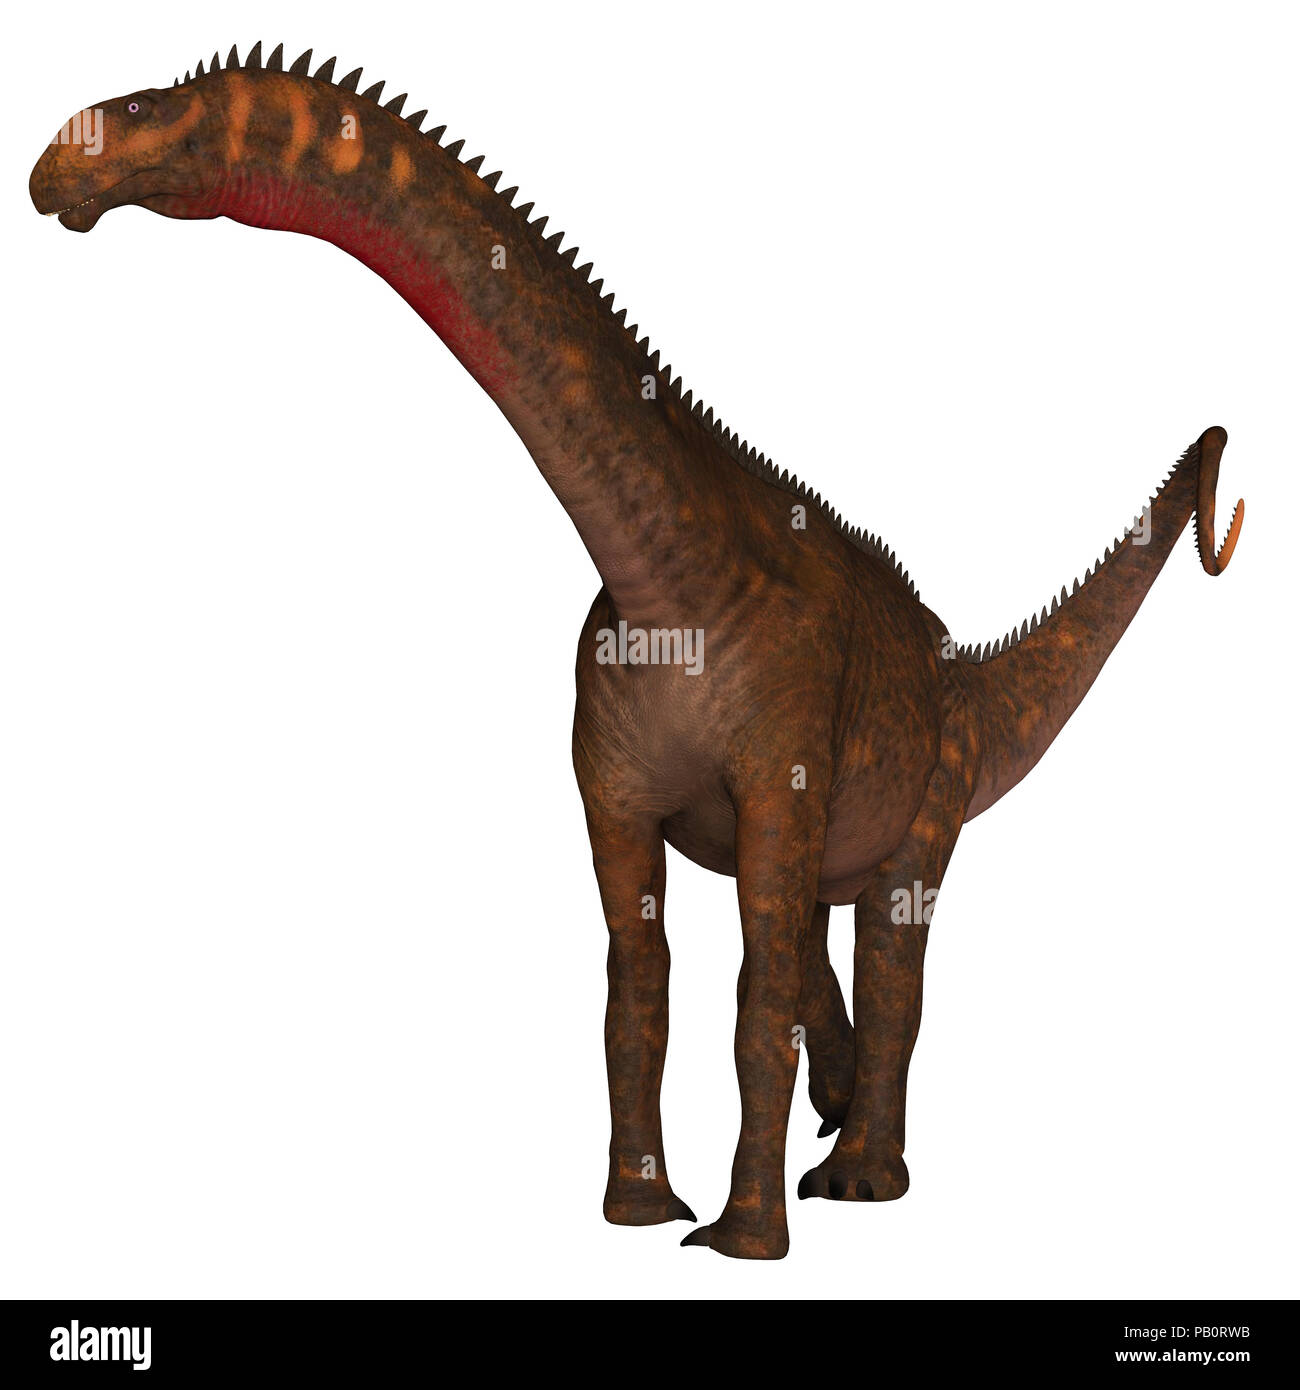 Mierasaurus Dinosaur on White - Mierasaurus was a herbivorous sauropod dinosaur that lived in Utah, USA during the Cretaceous Period. - Stock Image